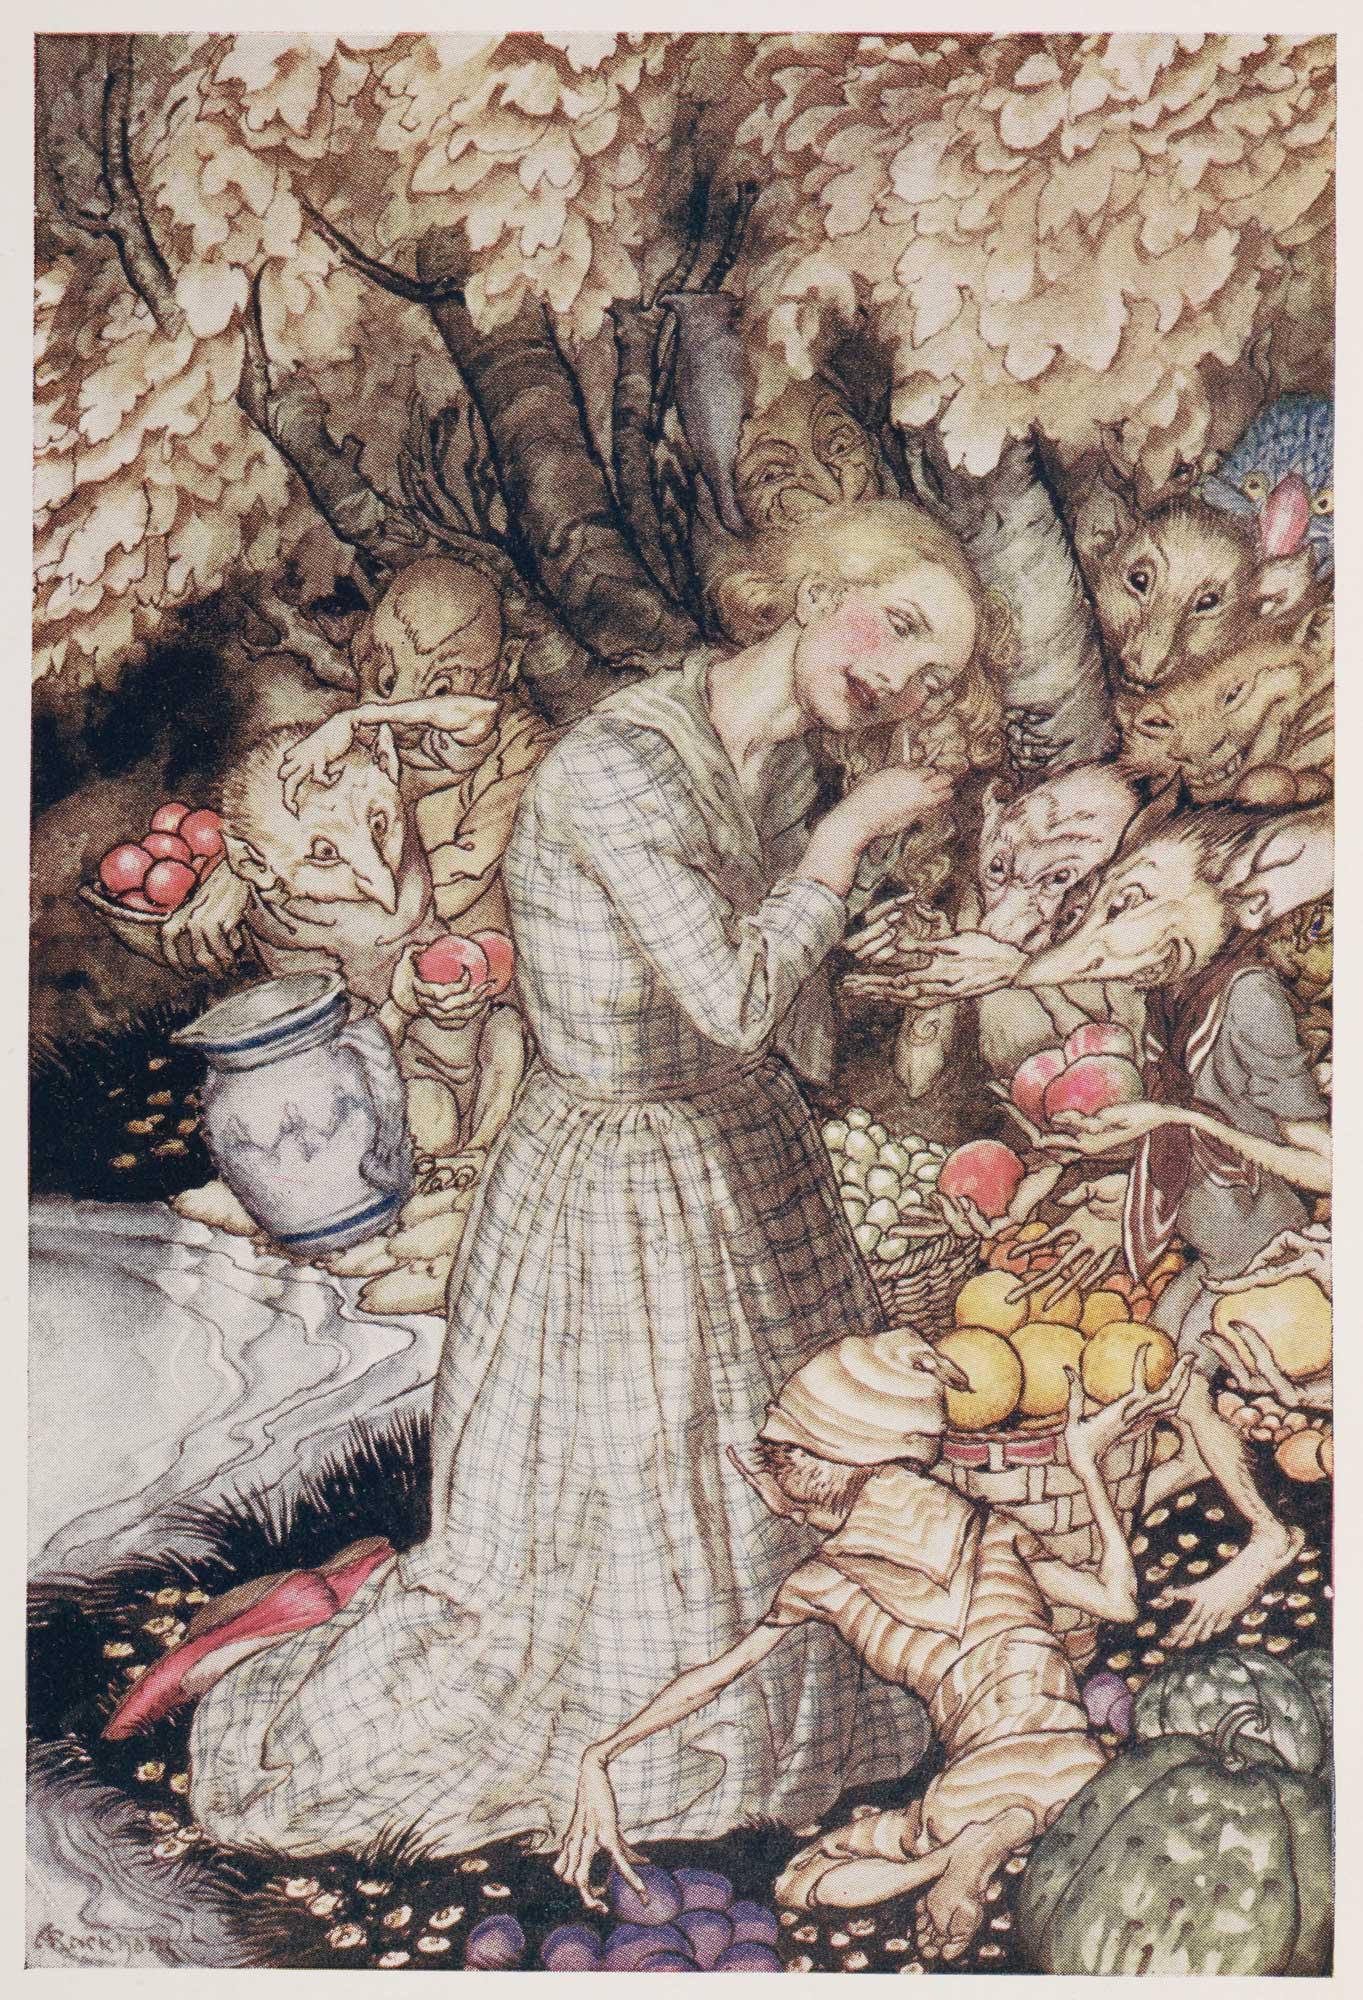 Goblin Market illustrated by Arthur Rackham